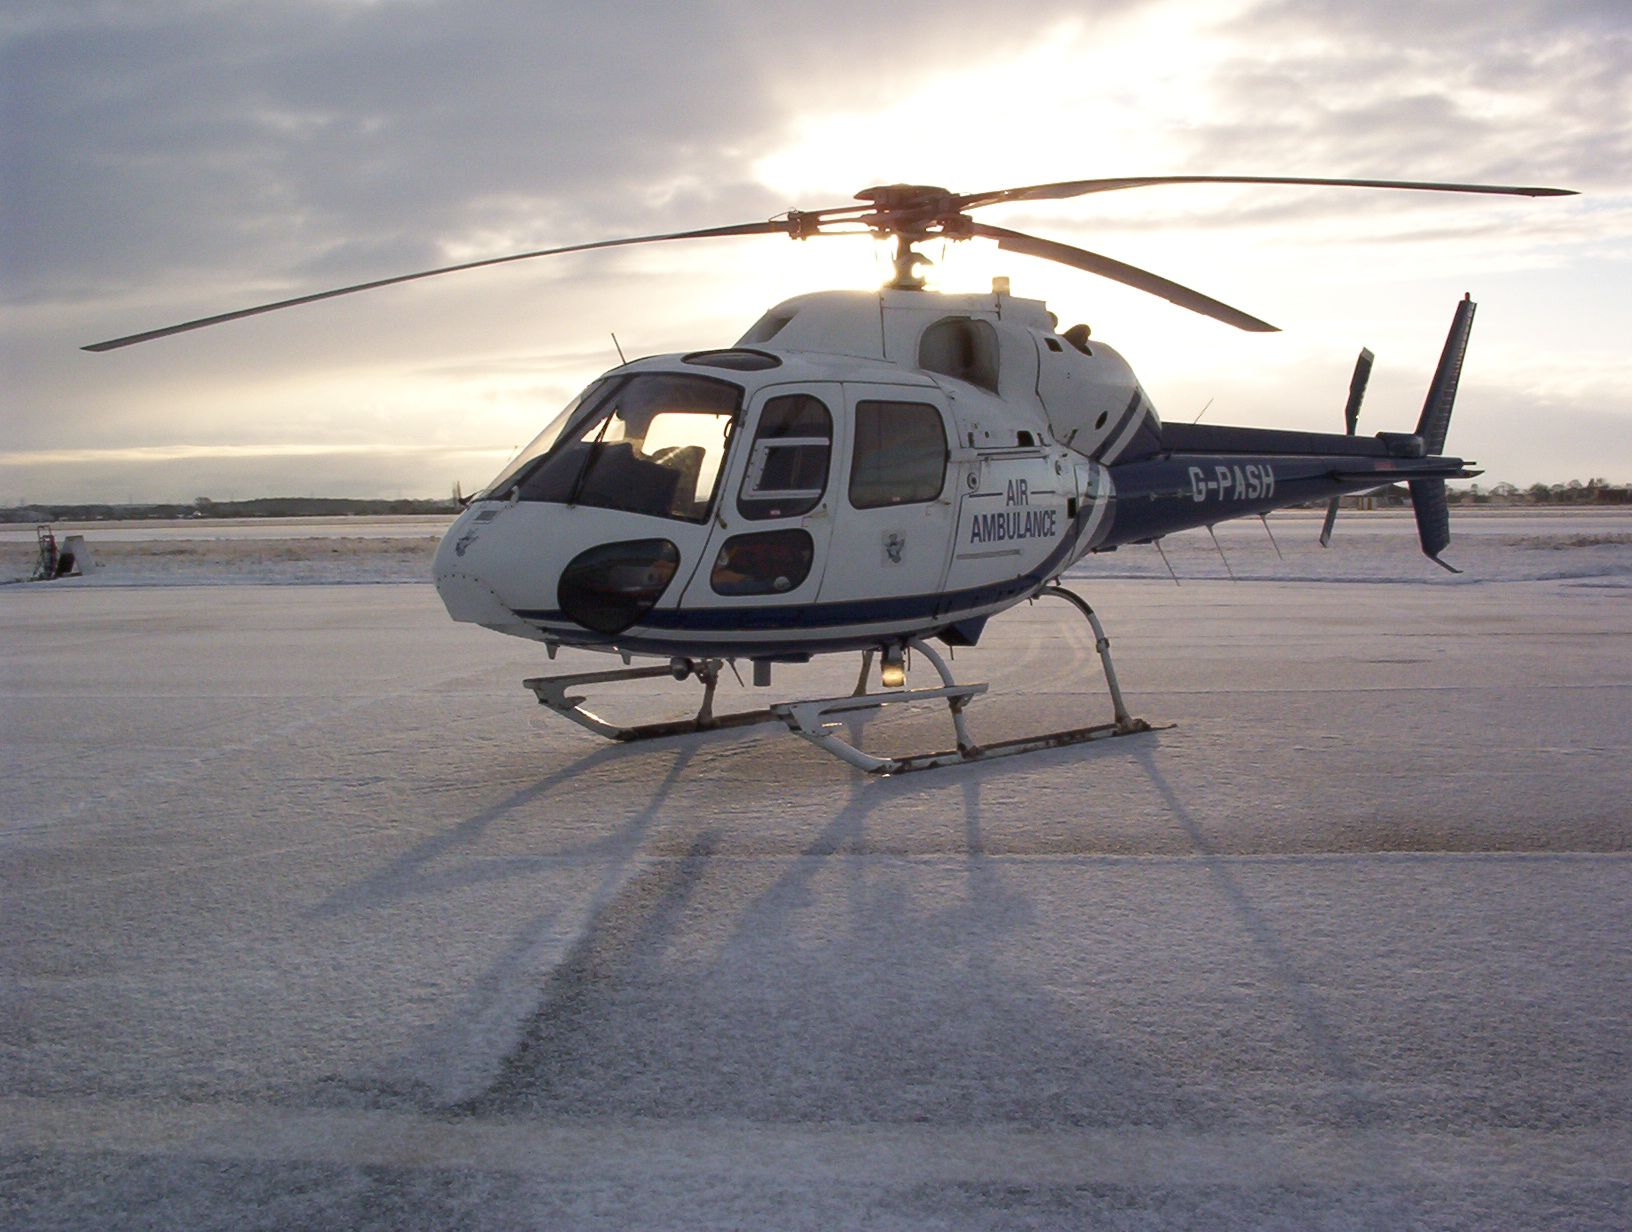 G-PASH helicopter